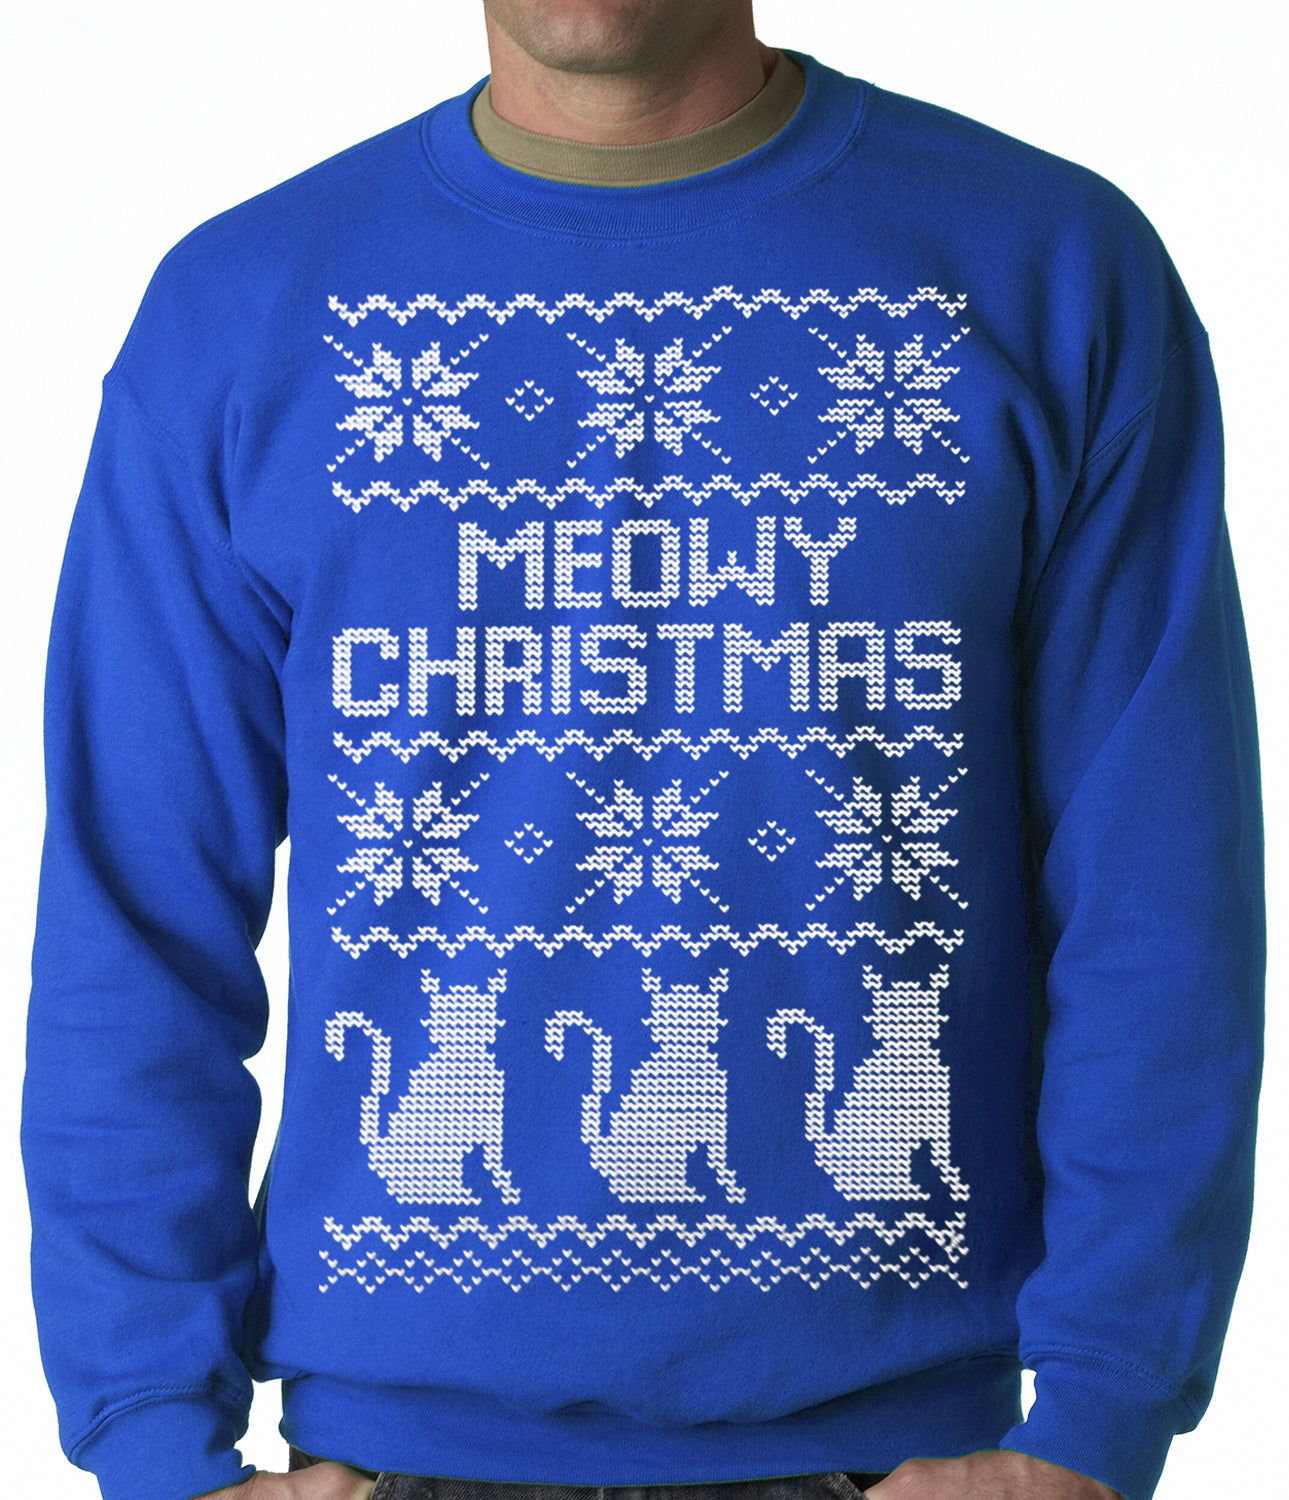 Blue And White Christmas Sweater.Ugly Christmas Sweater Meowy Christmas White Print 3 Cats Ugly Christmas Adult Crewneck